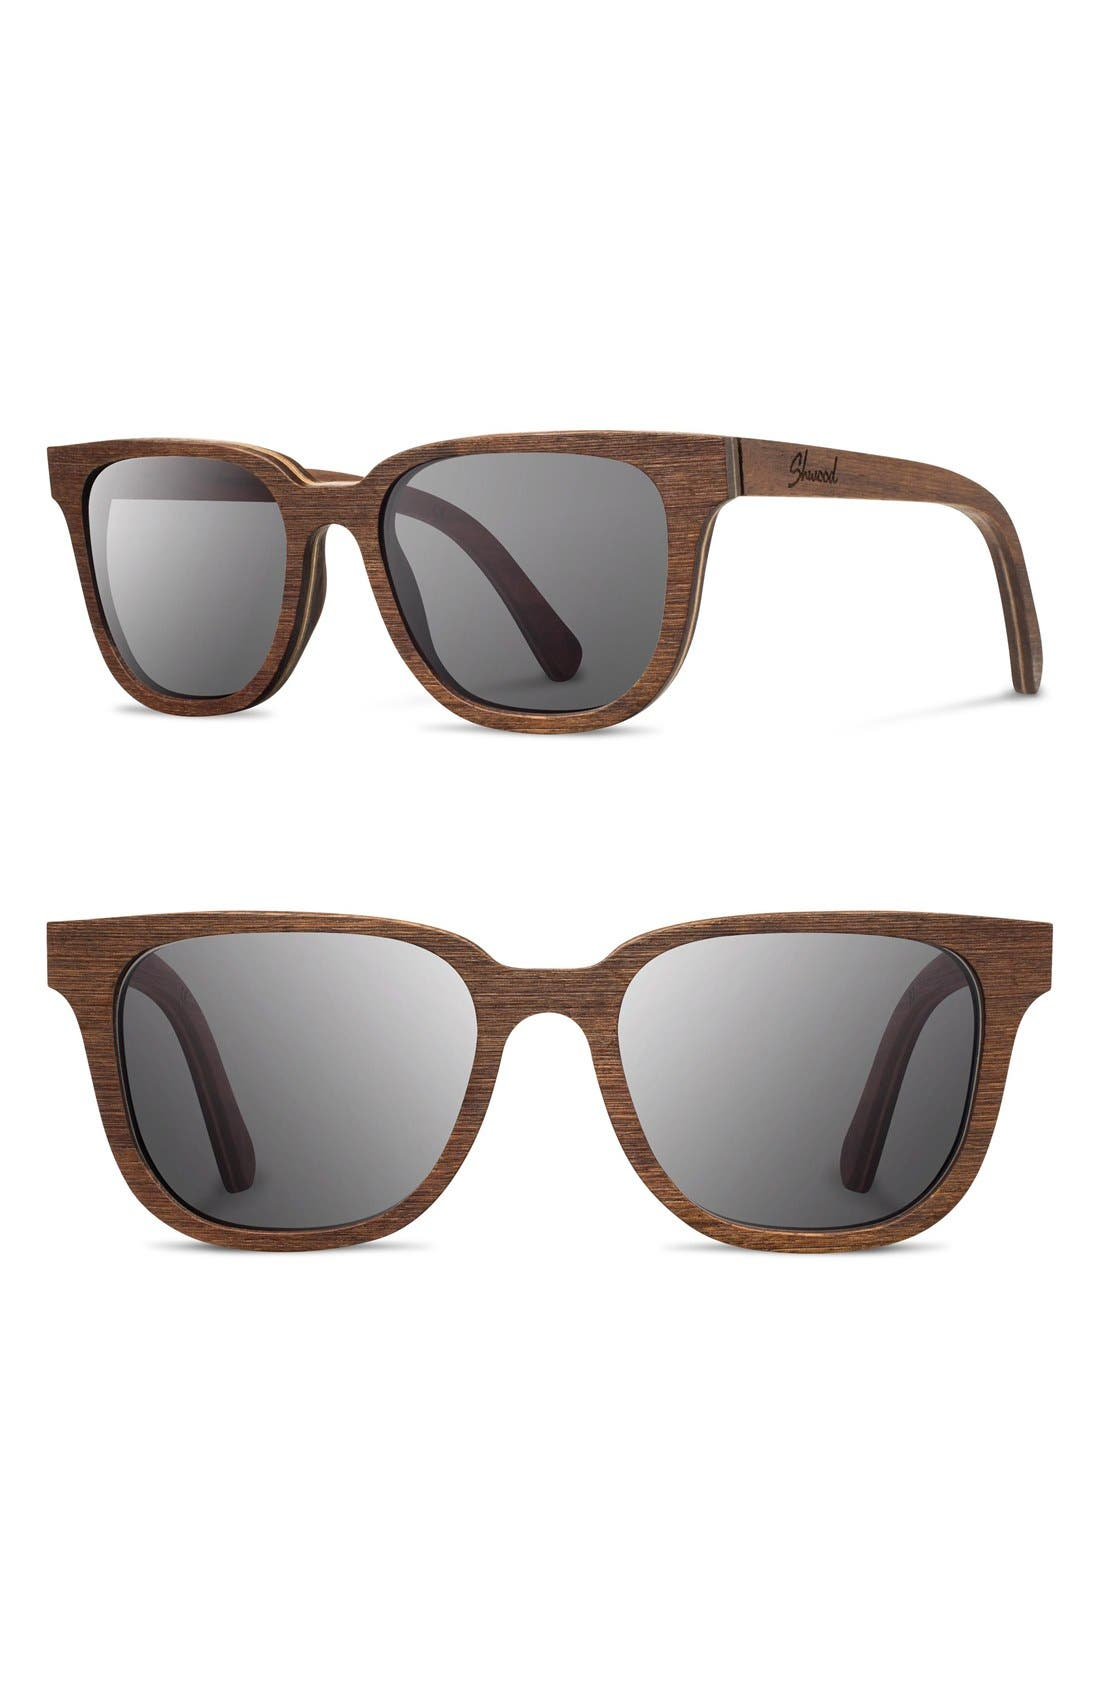 'Prescott' 52mm Wood Sunglasses,                             Main thumbnail 1, color,                             Walnut/ Grey